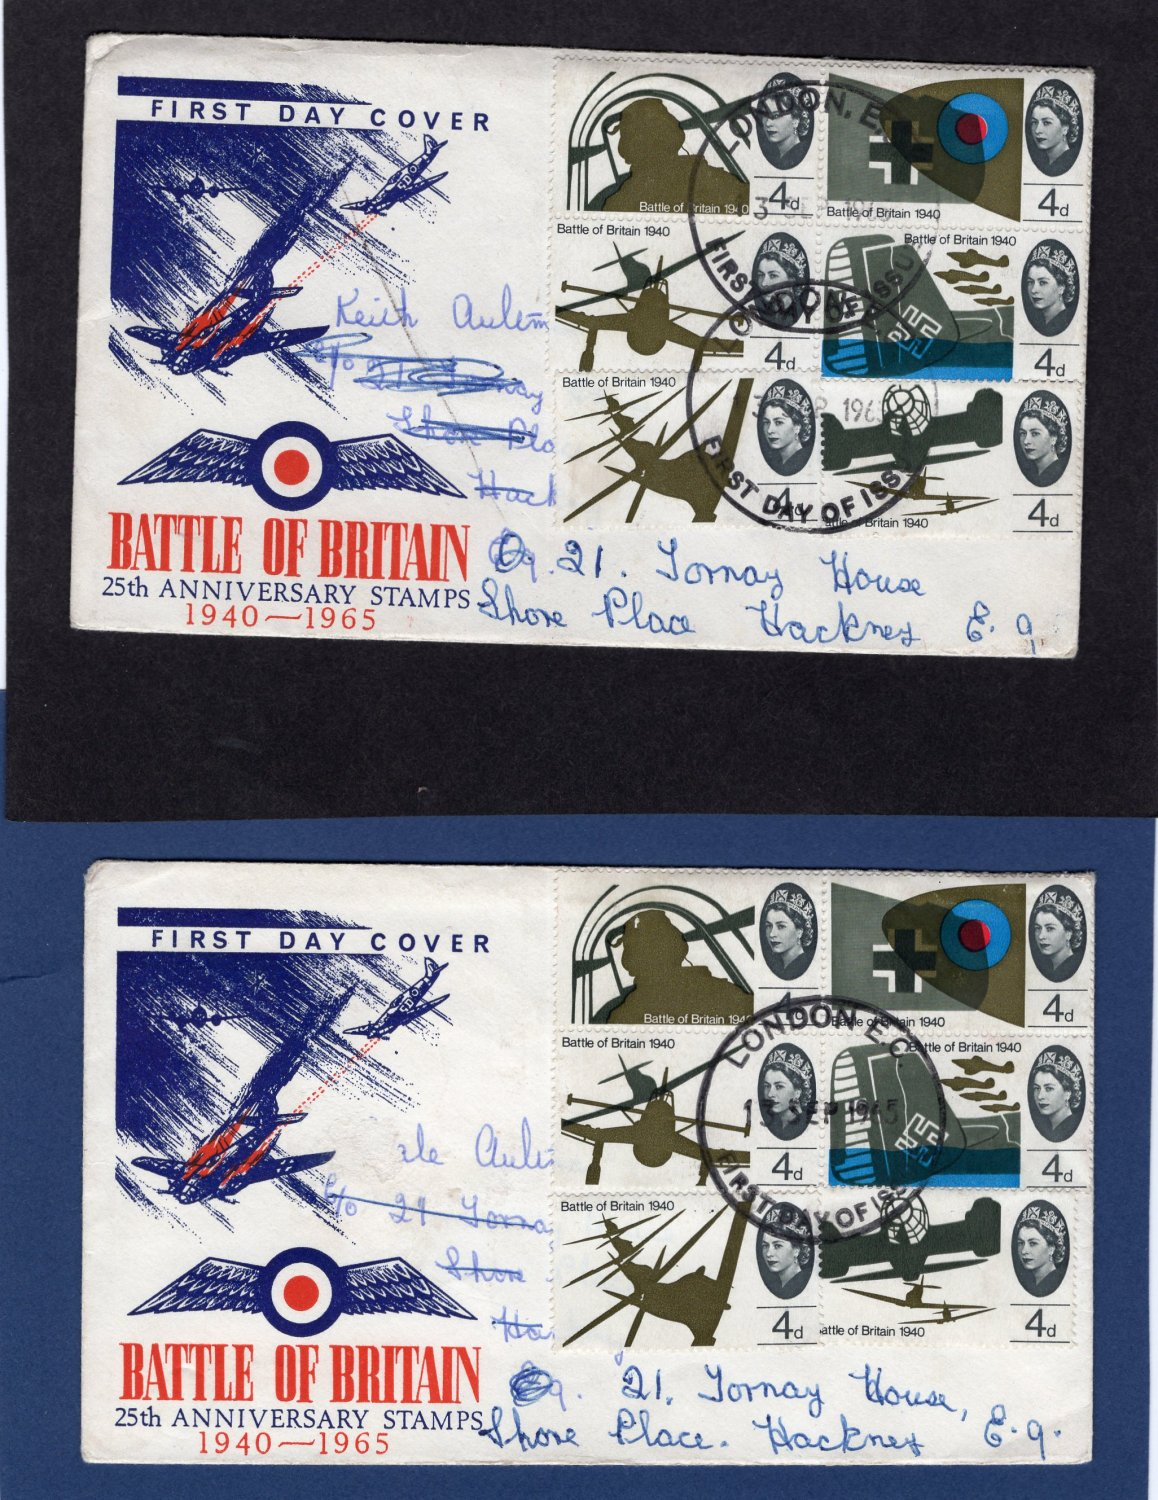 Two First Day Covers, Battle of Britain, 25th Anniversary Stamps, U.K. 1965